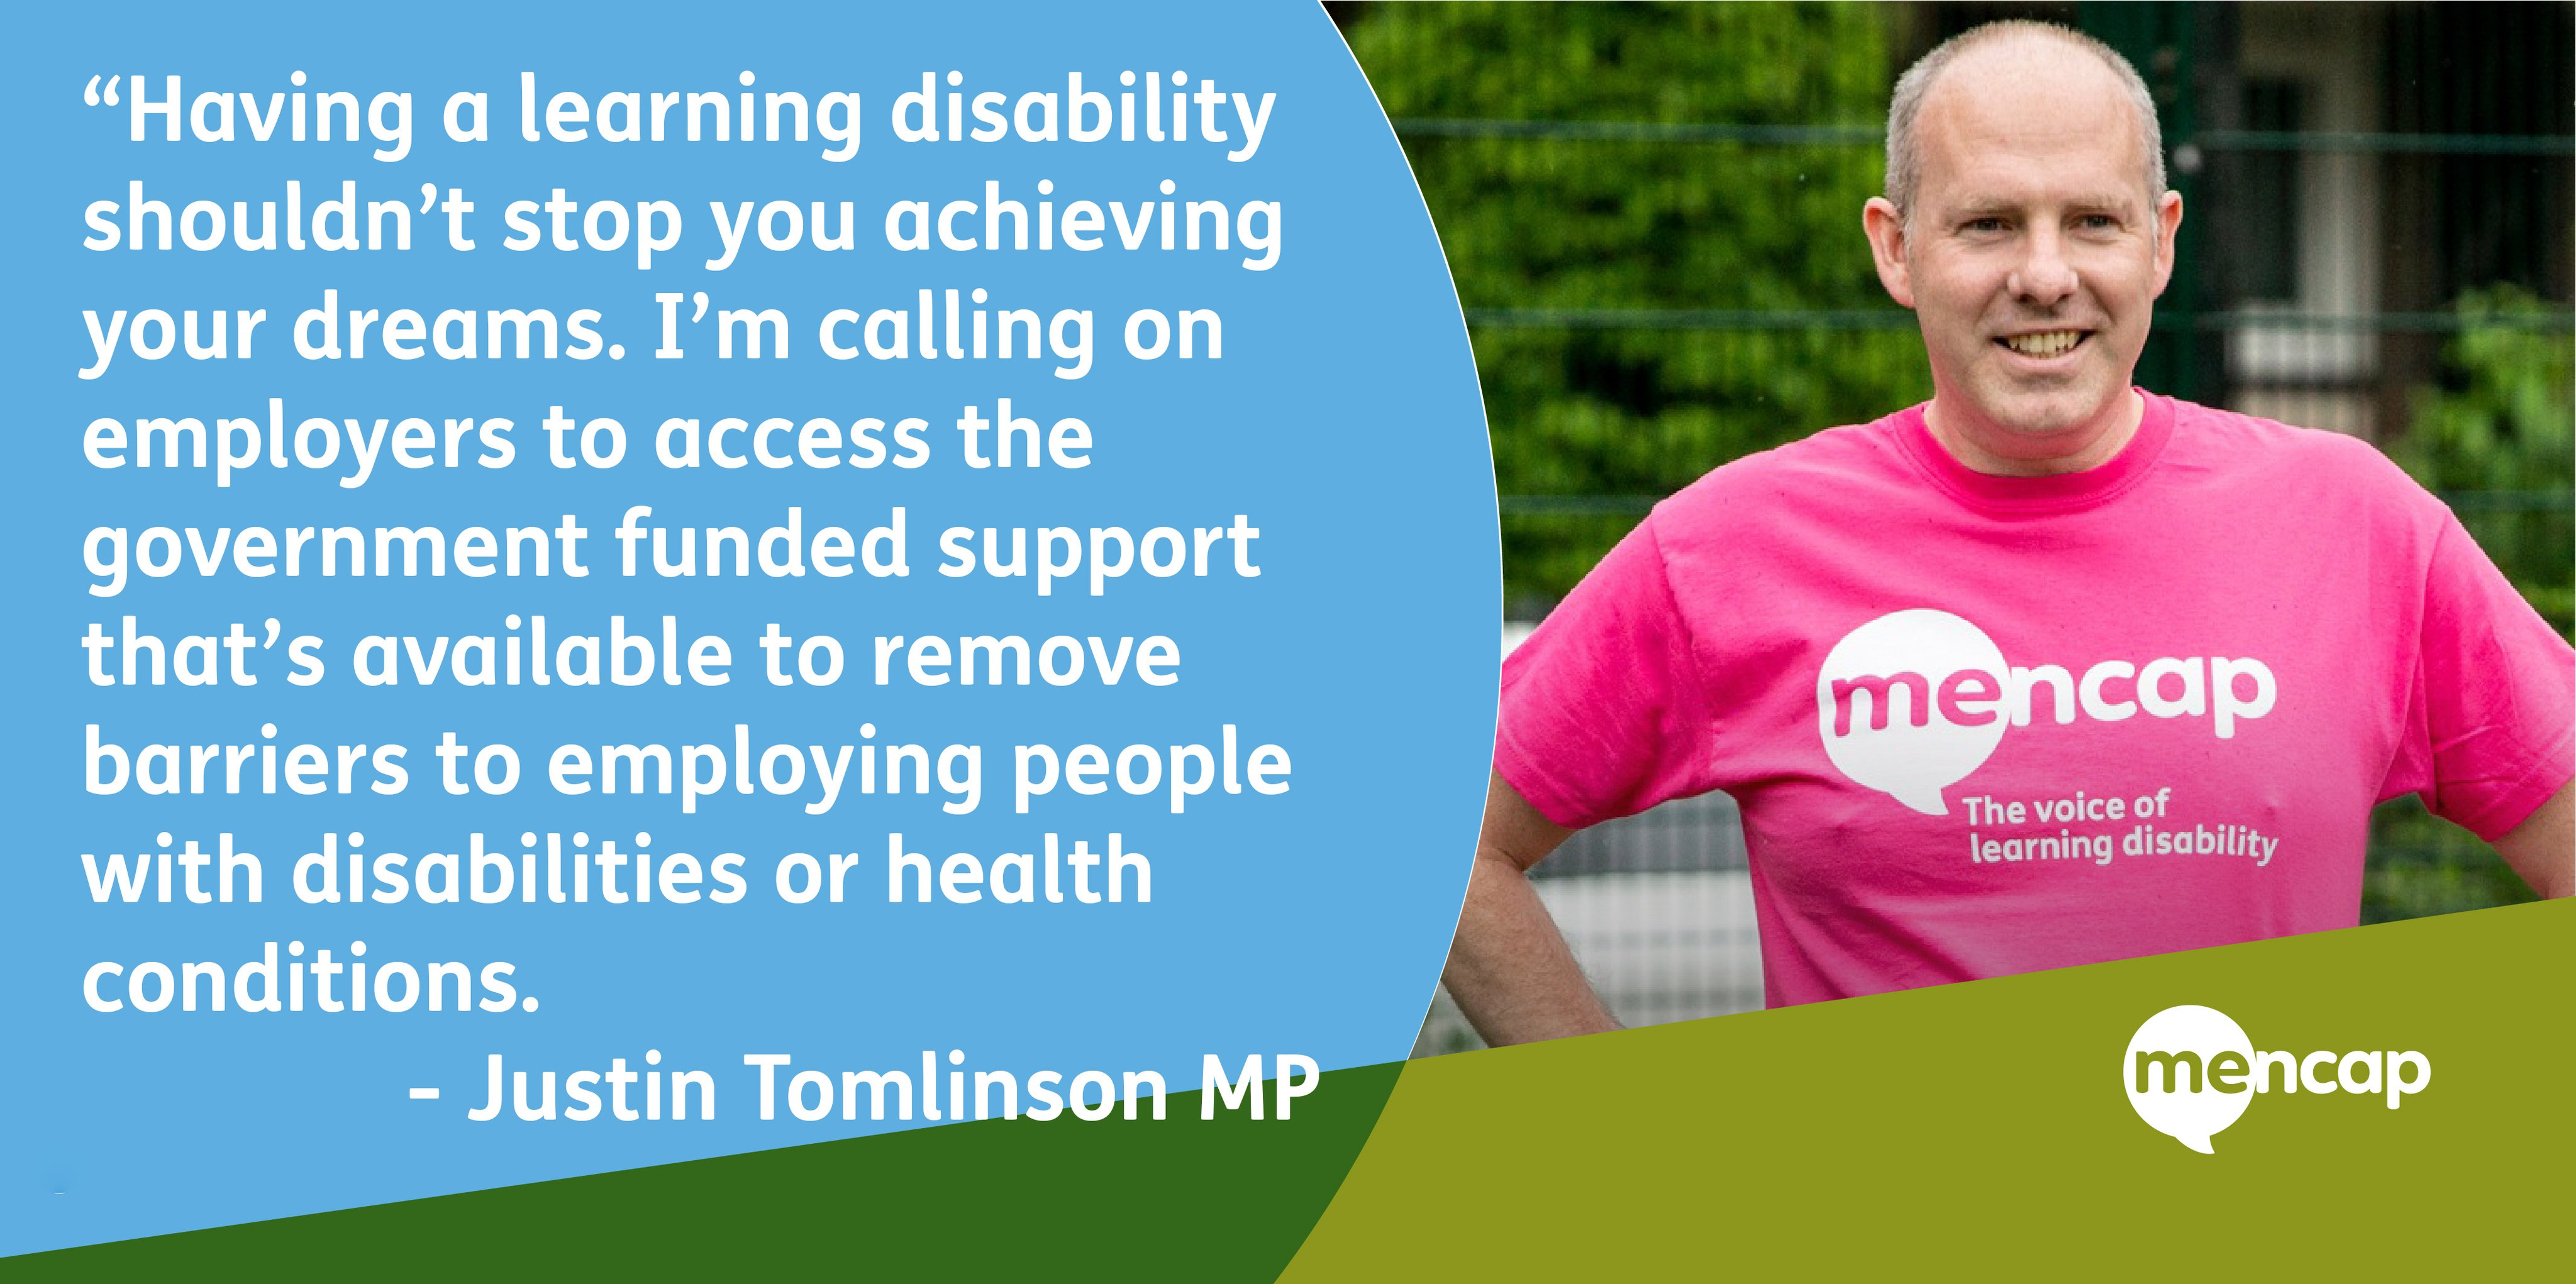 Justin Asks Employers to #thinkdifferently For National Learning Disability Work Week